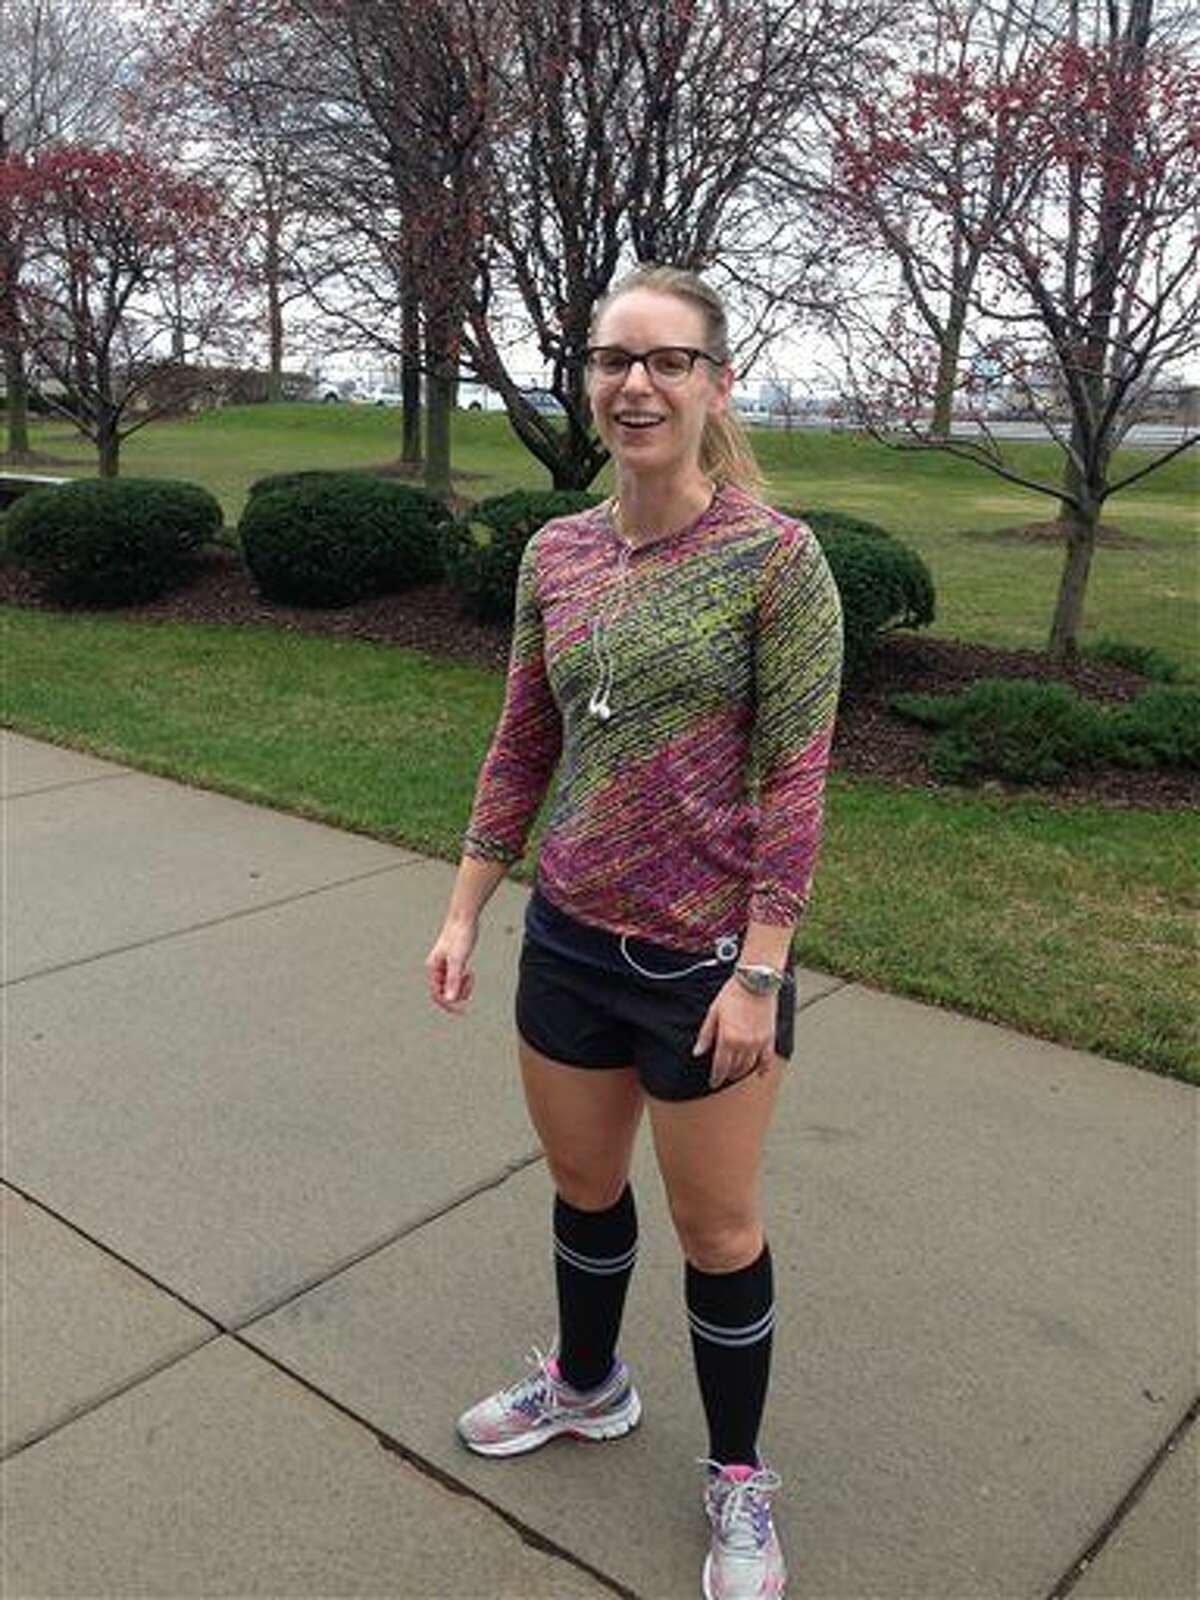 """Rheanne Suszek, 33, of Detroit, takes advantage of warm weather by running along Detroit's east riverfront Sunday. Suszek says on a typical December day in Michigan she would be wearing """"long, insulated running tights"""" while exercising outdoors."""